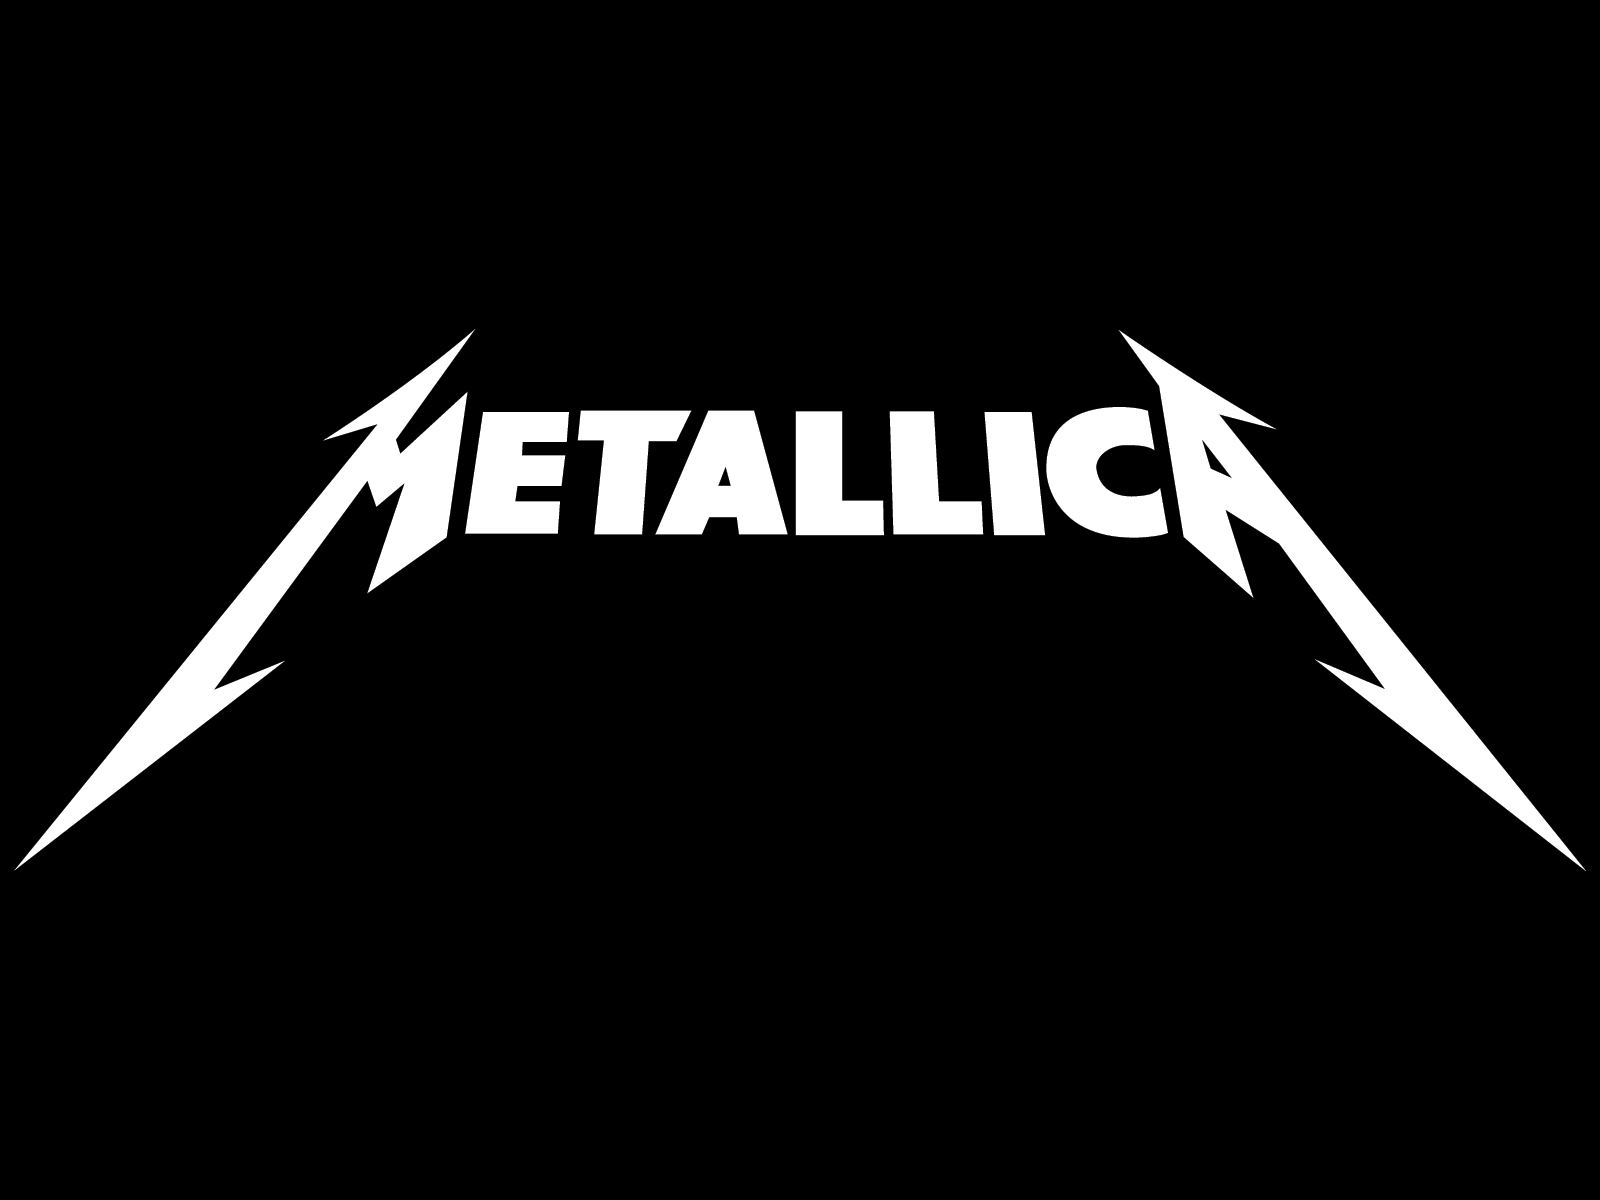 Metallica Wallpaper and Background Image | 1600x1200 | ID ...